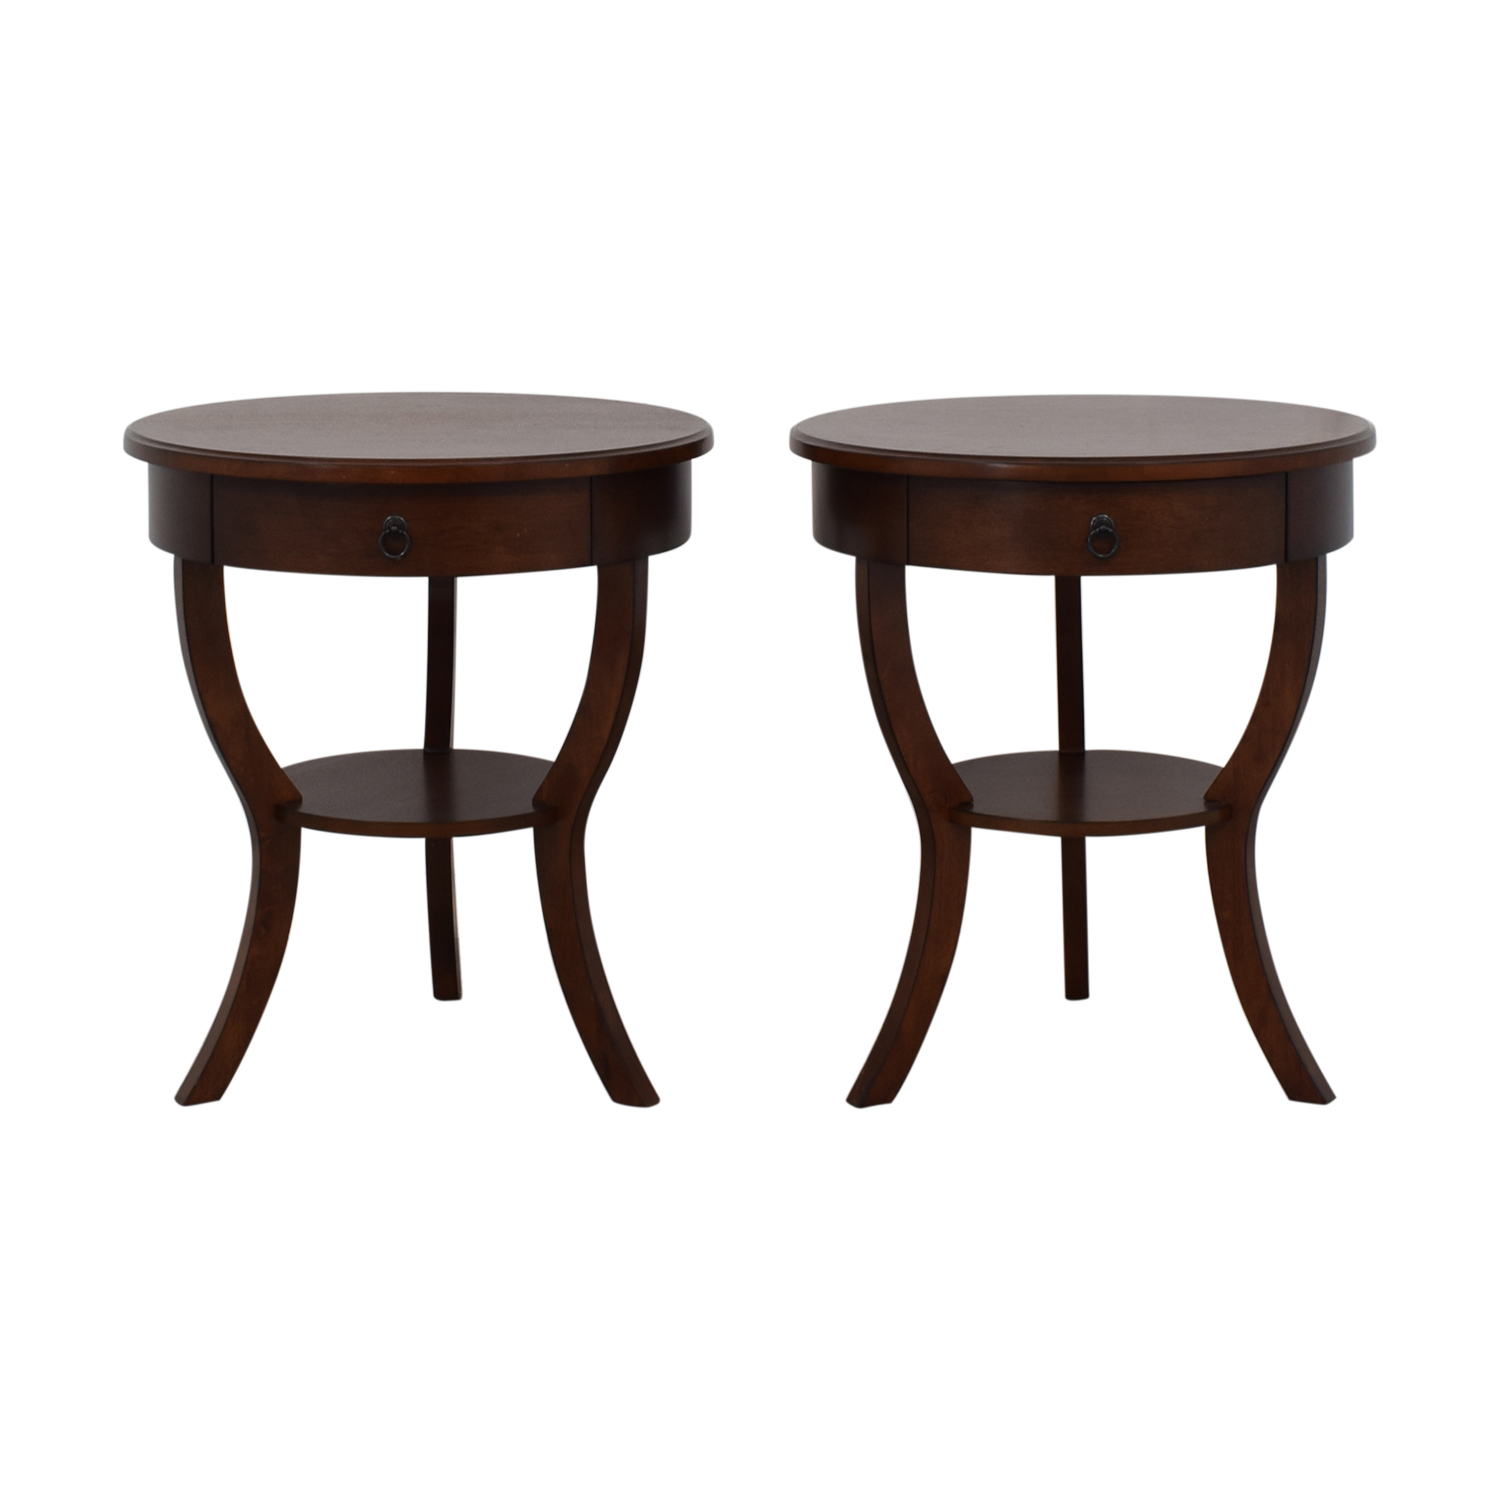 buy Pottery Barn Carrie Round Single-Drawer Pedestal End Tables Pottery Barn